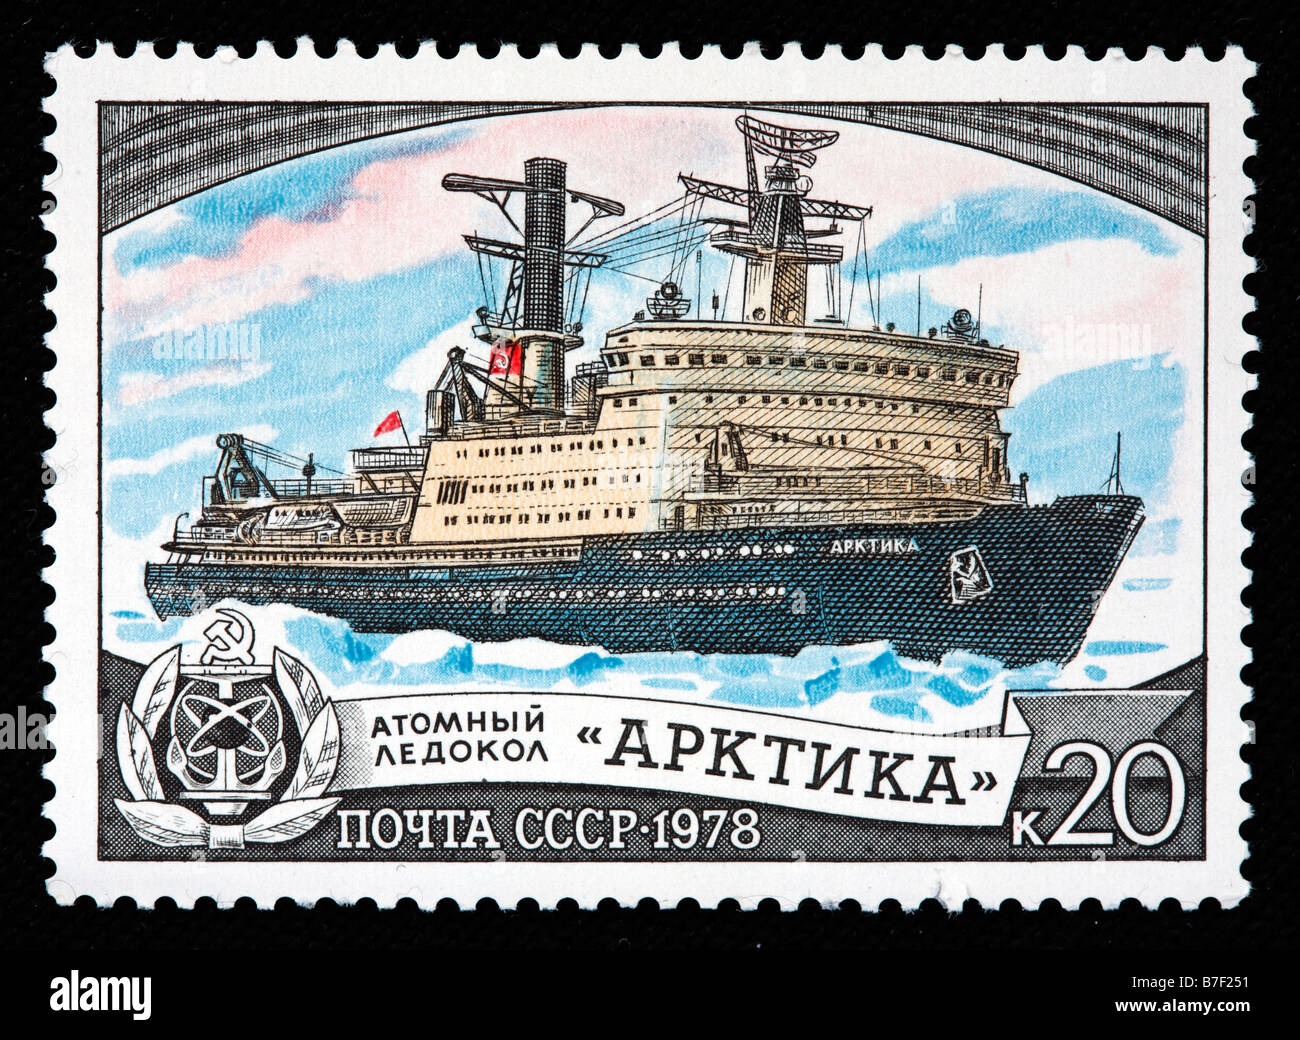 Russian nuclear powered icebreaker 'Arktika', postage stamp, USSR, Russia, 1978 - Stock Image